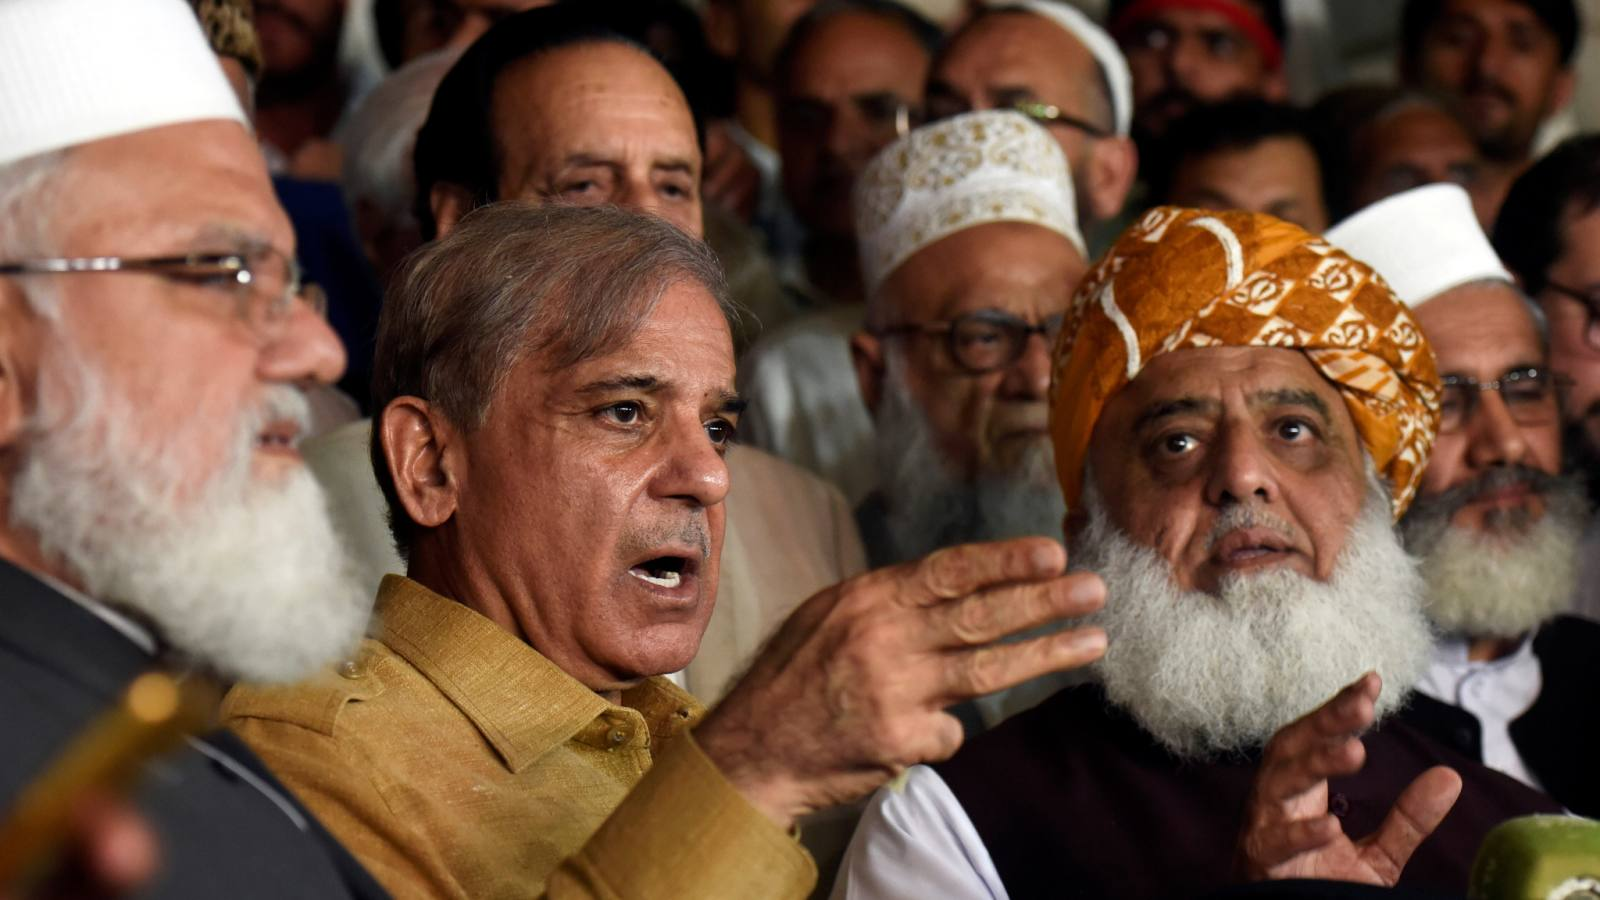 Shehbaz Sharif, second from left, the PML-N president and brother of Nawaz Sharif, speaks during a news conference as Fazal ur Rehm Jamiat Ulma-e-Islamparty leader looks on after an All Parties Conference in Islamabad onJuly 27.